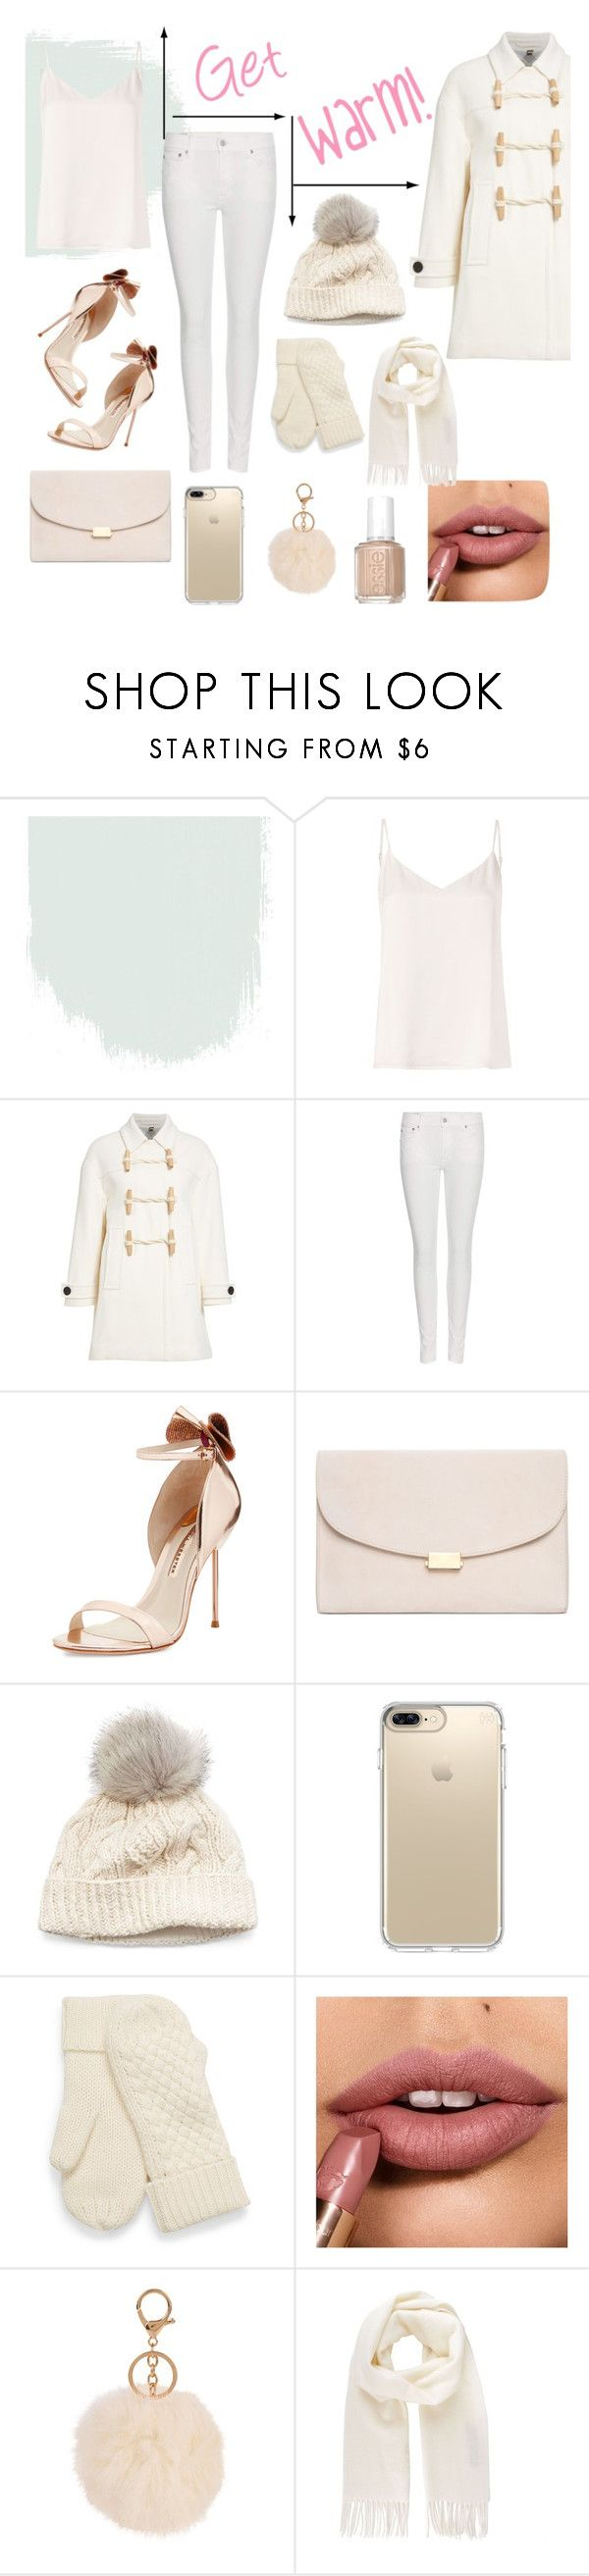 """""""Get warm"""" by suha123 ❤ liked on Polyvore featuring L'Agence, Burberry, Polo Ralph Lauren, Sophia Webster, Mansur Gavriel, SIJJL, Speck, Armitage Avenue, Vivienne Westwood and Essie"""